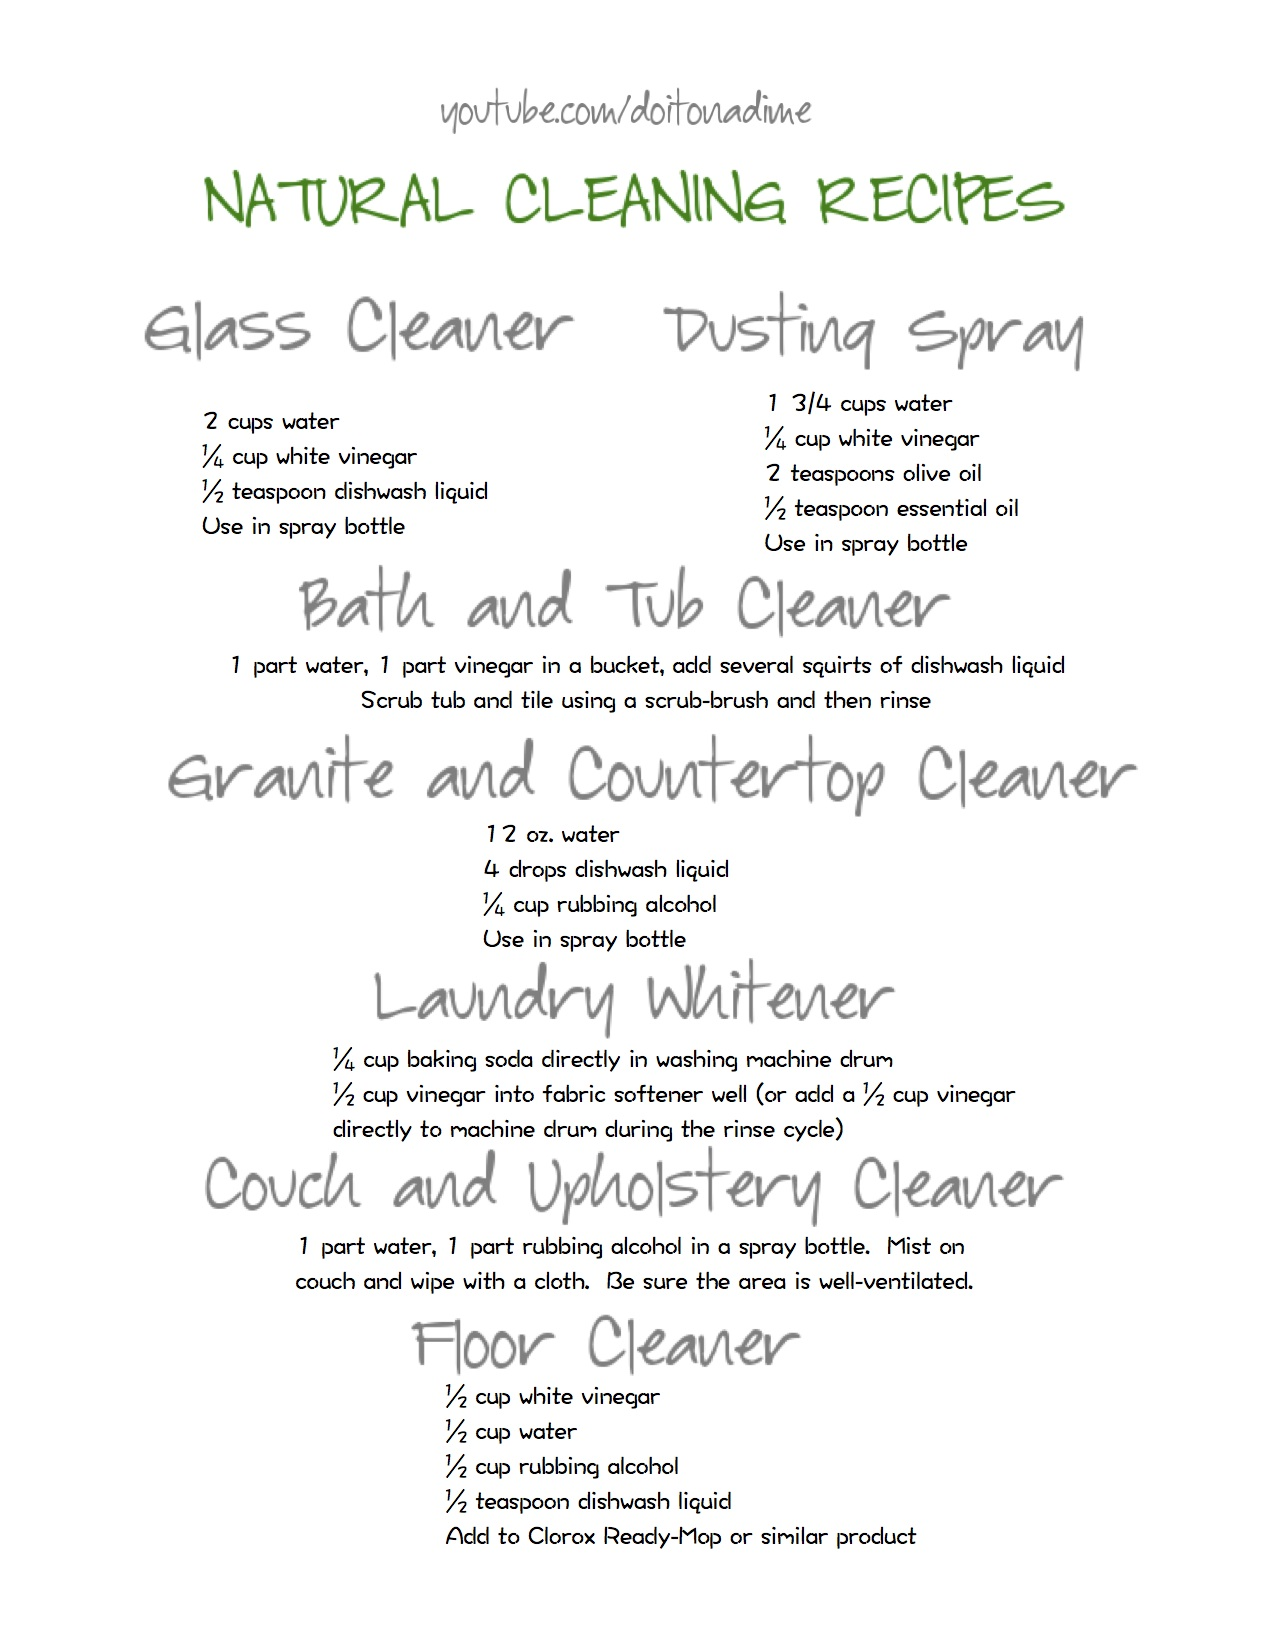 superb natural cleaning recipes Part - 8: superb natural cleaning recipes good ideas